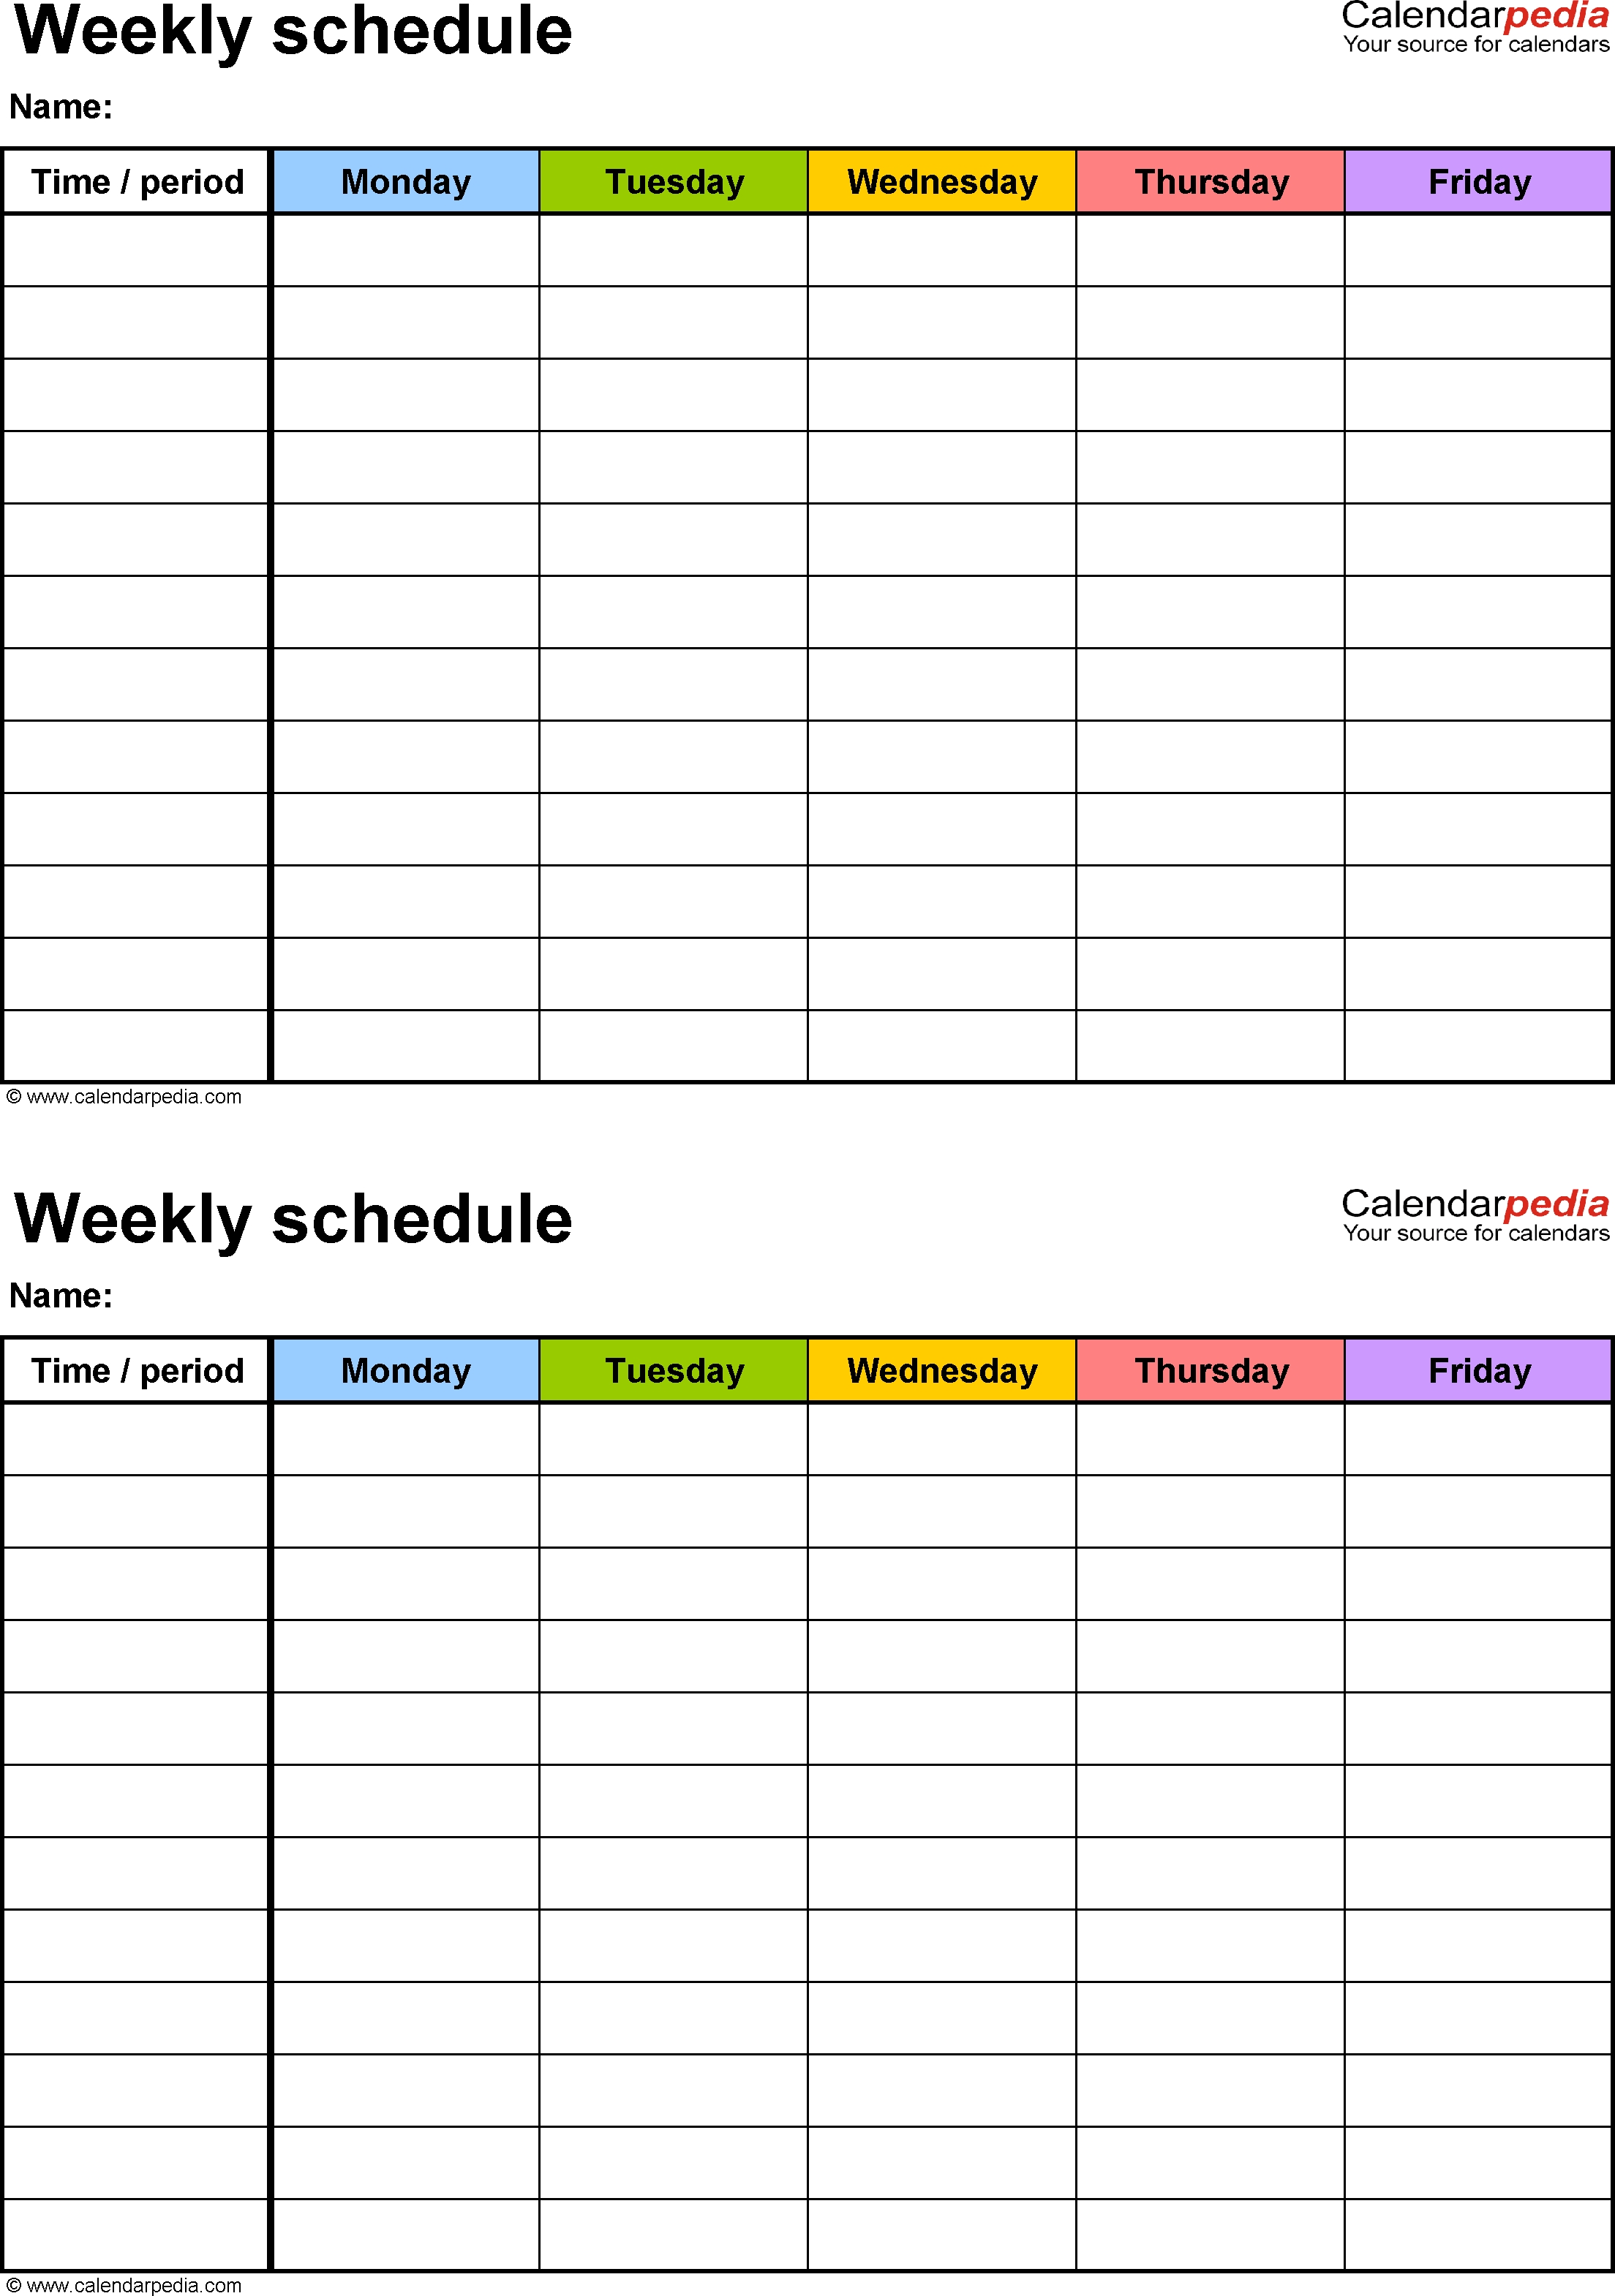 Weekly Schedule Template For Excel Version 3: 2 Schedules On One with regard to Monday Through Friday Schedule Template